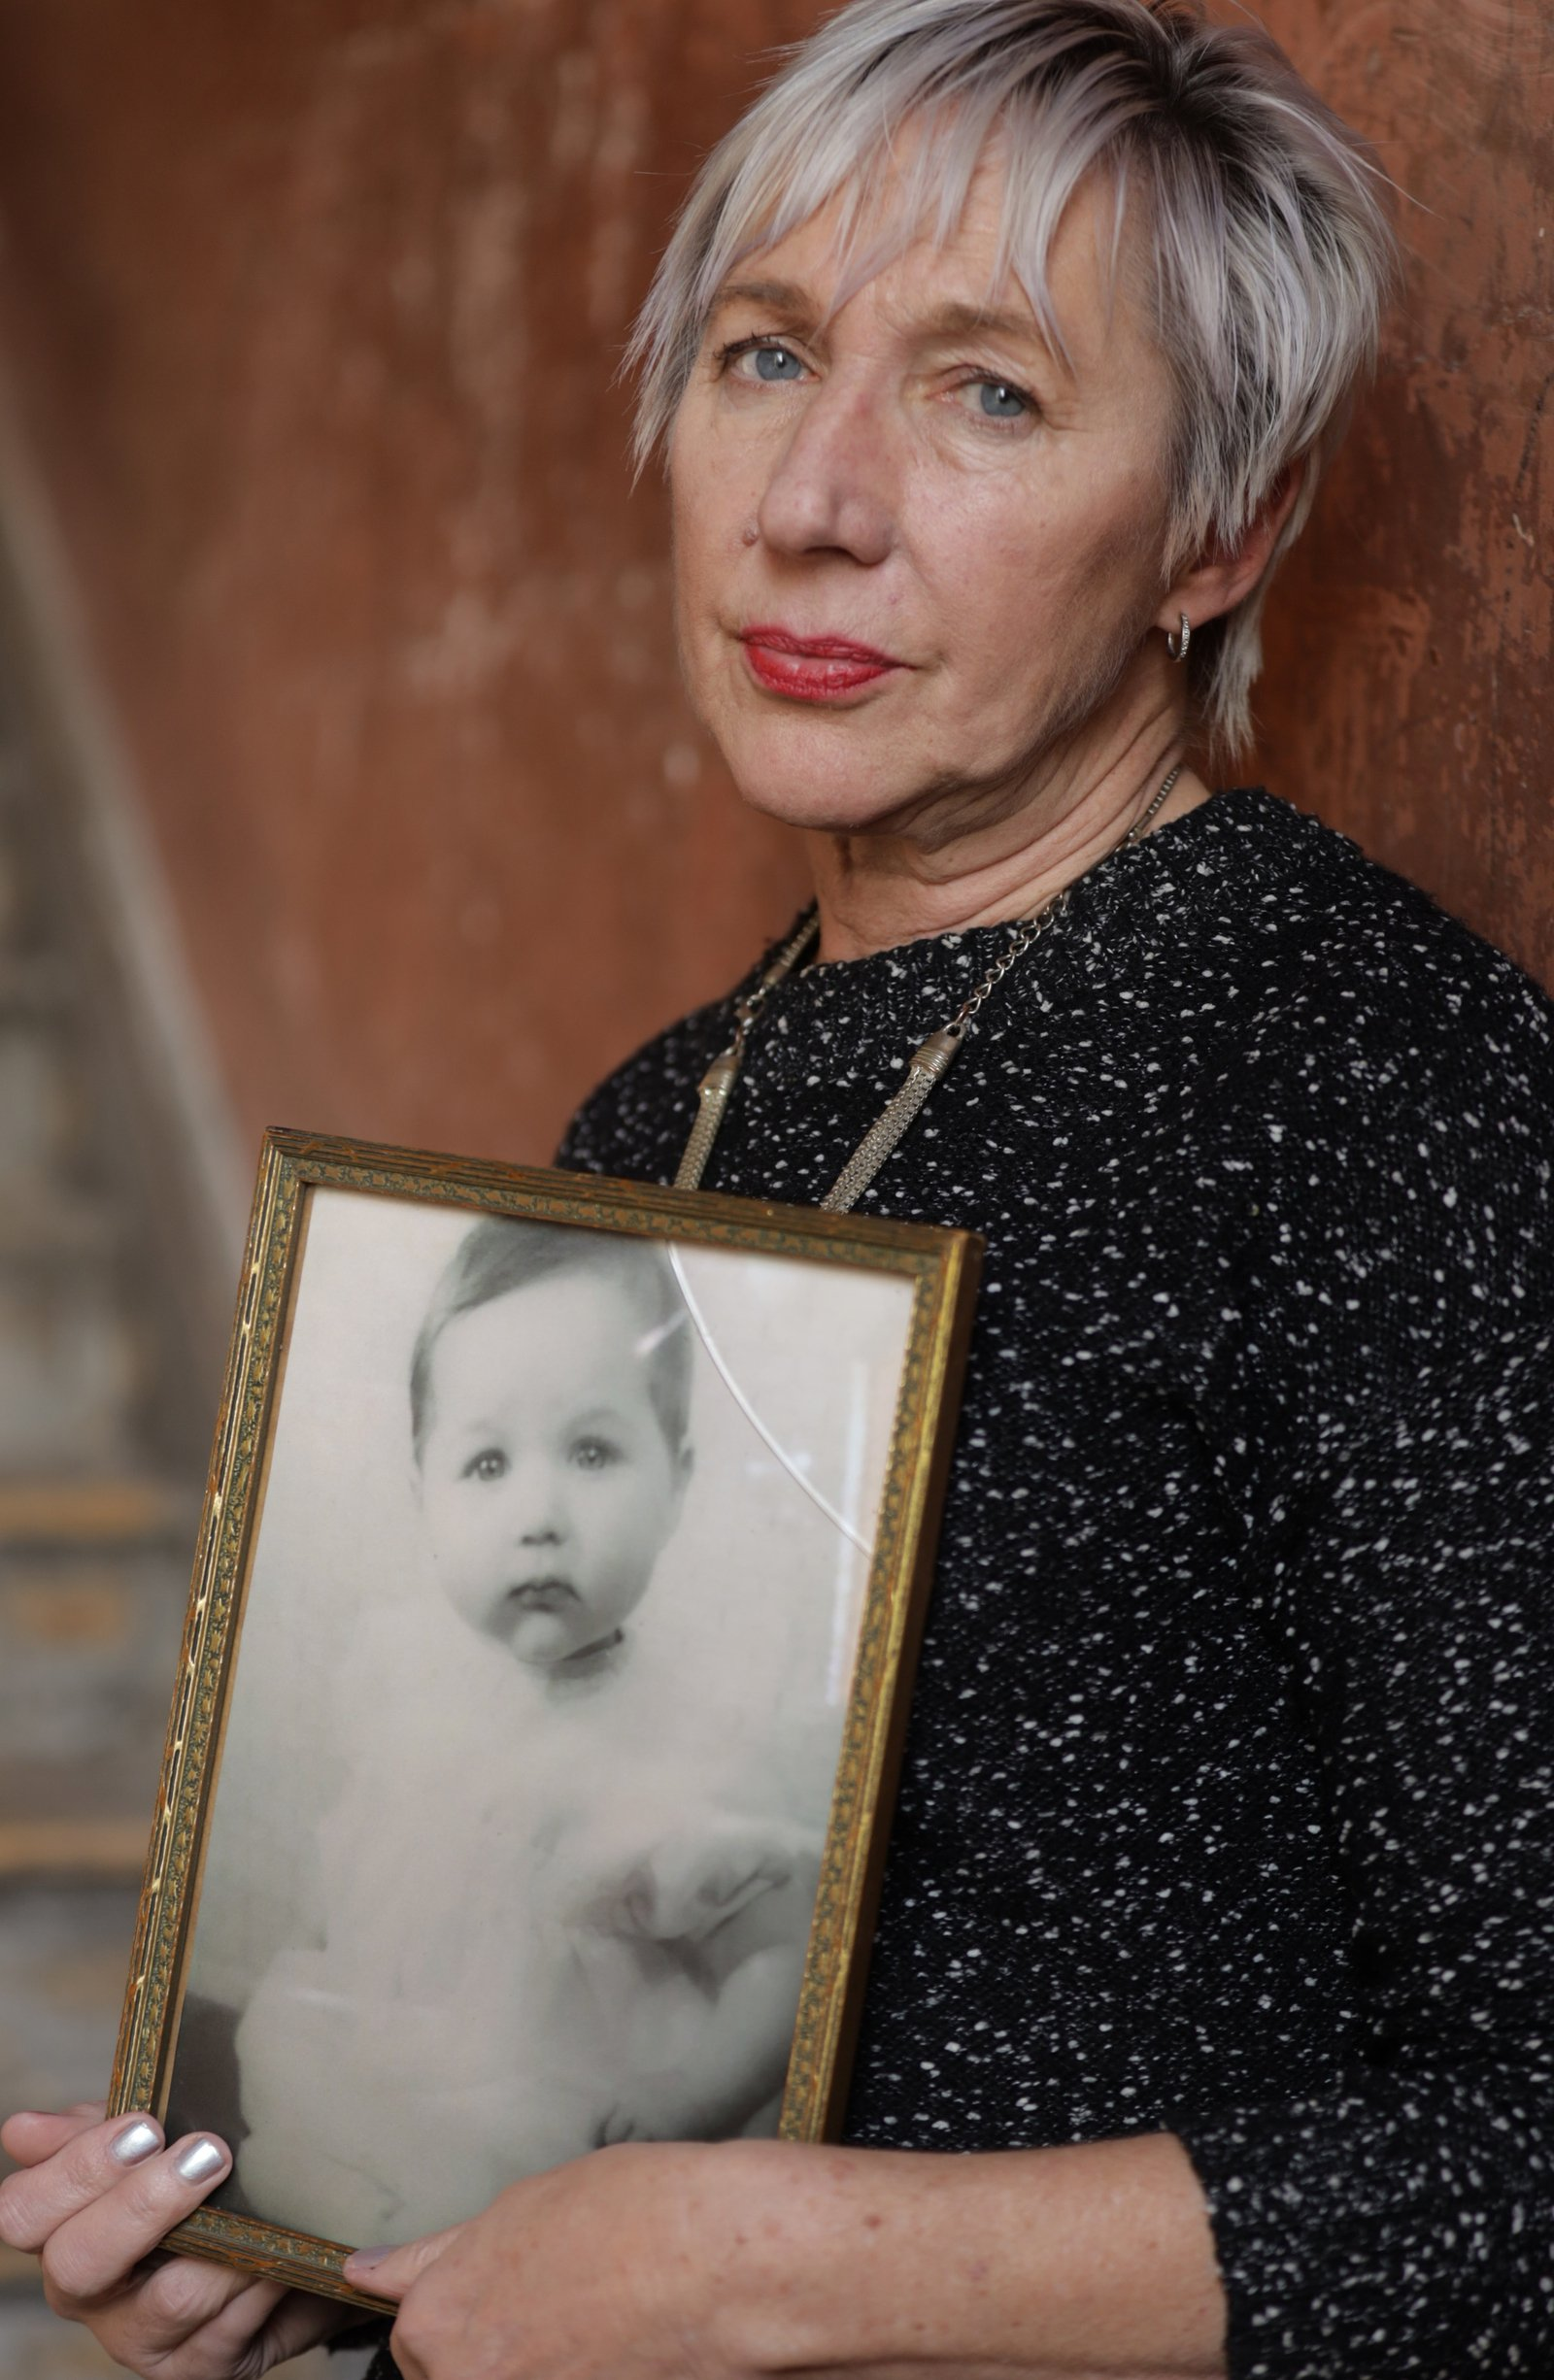 Image - For 62 years, Brenda Lynch lived her life believing she was the daughter of a middle-class couple from north Dublin